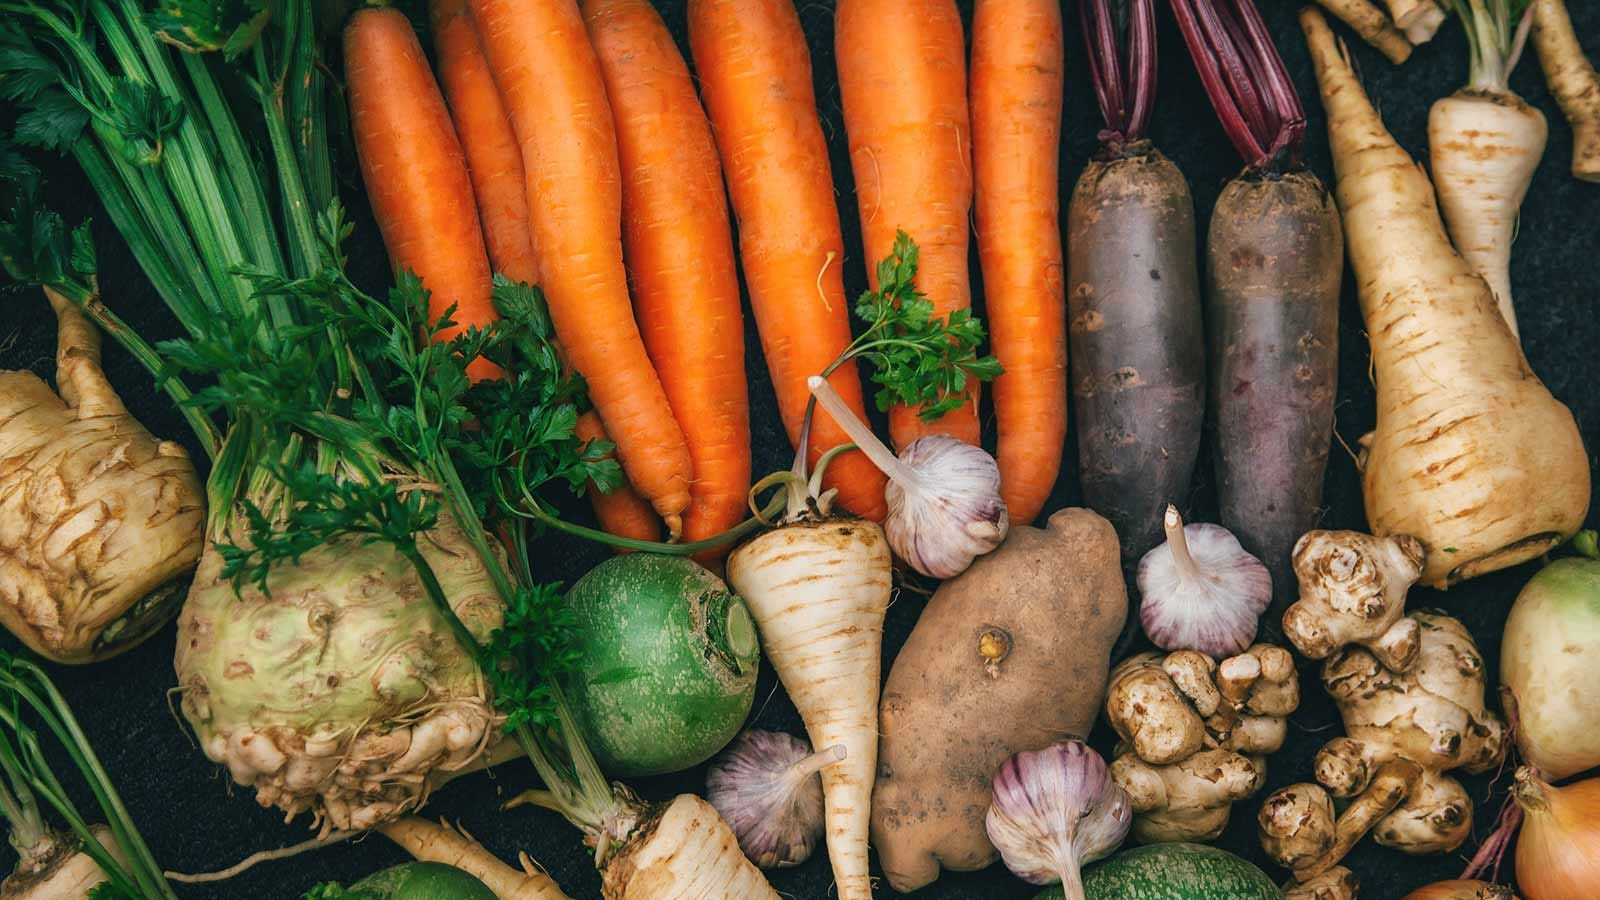 A selection of root vegetables like carrots, potatoes, and more.